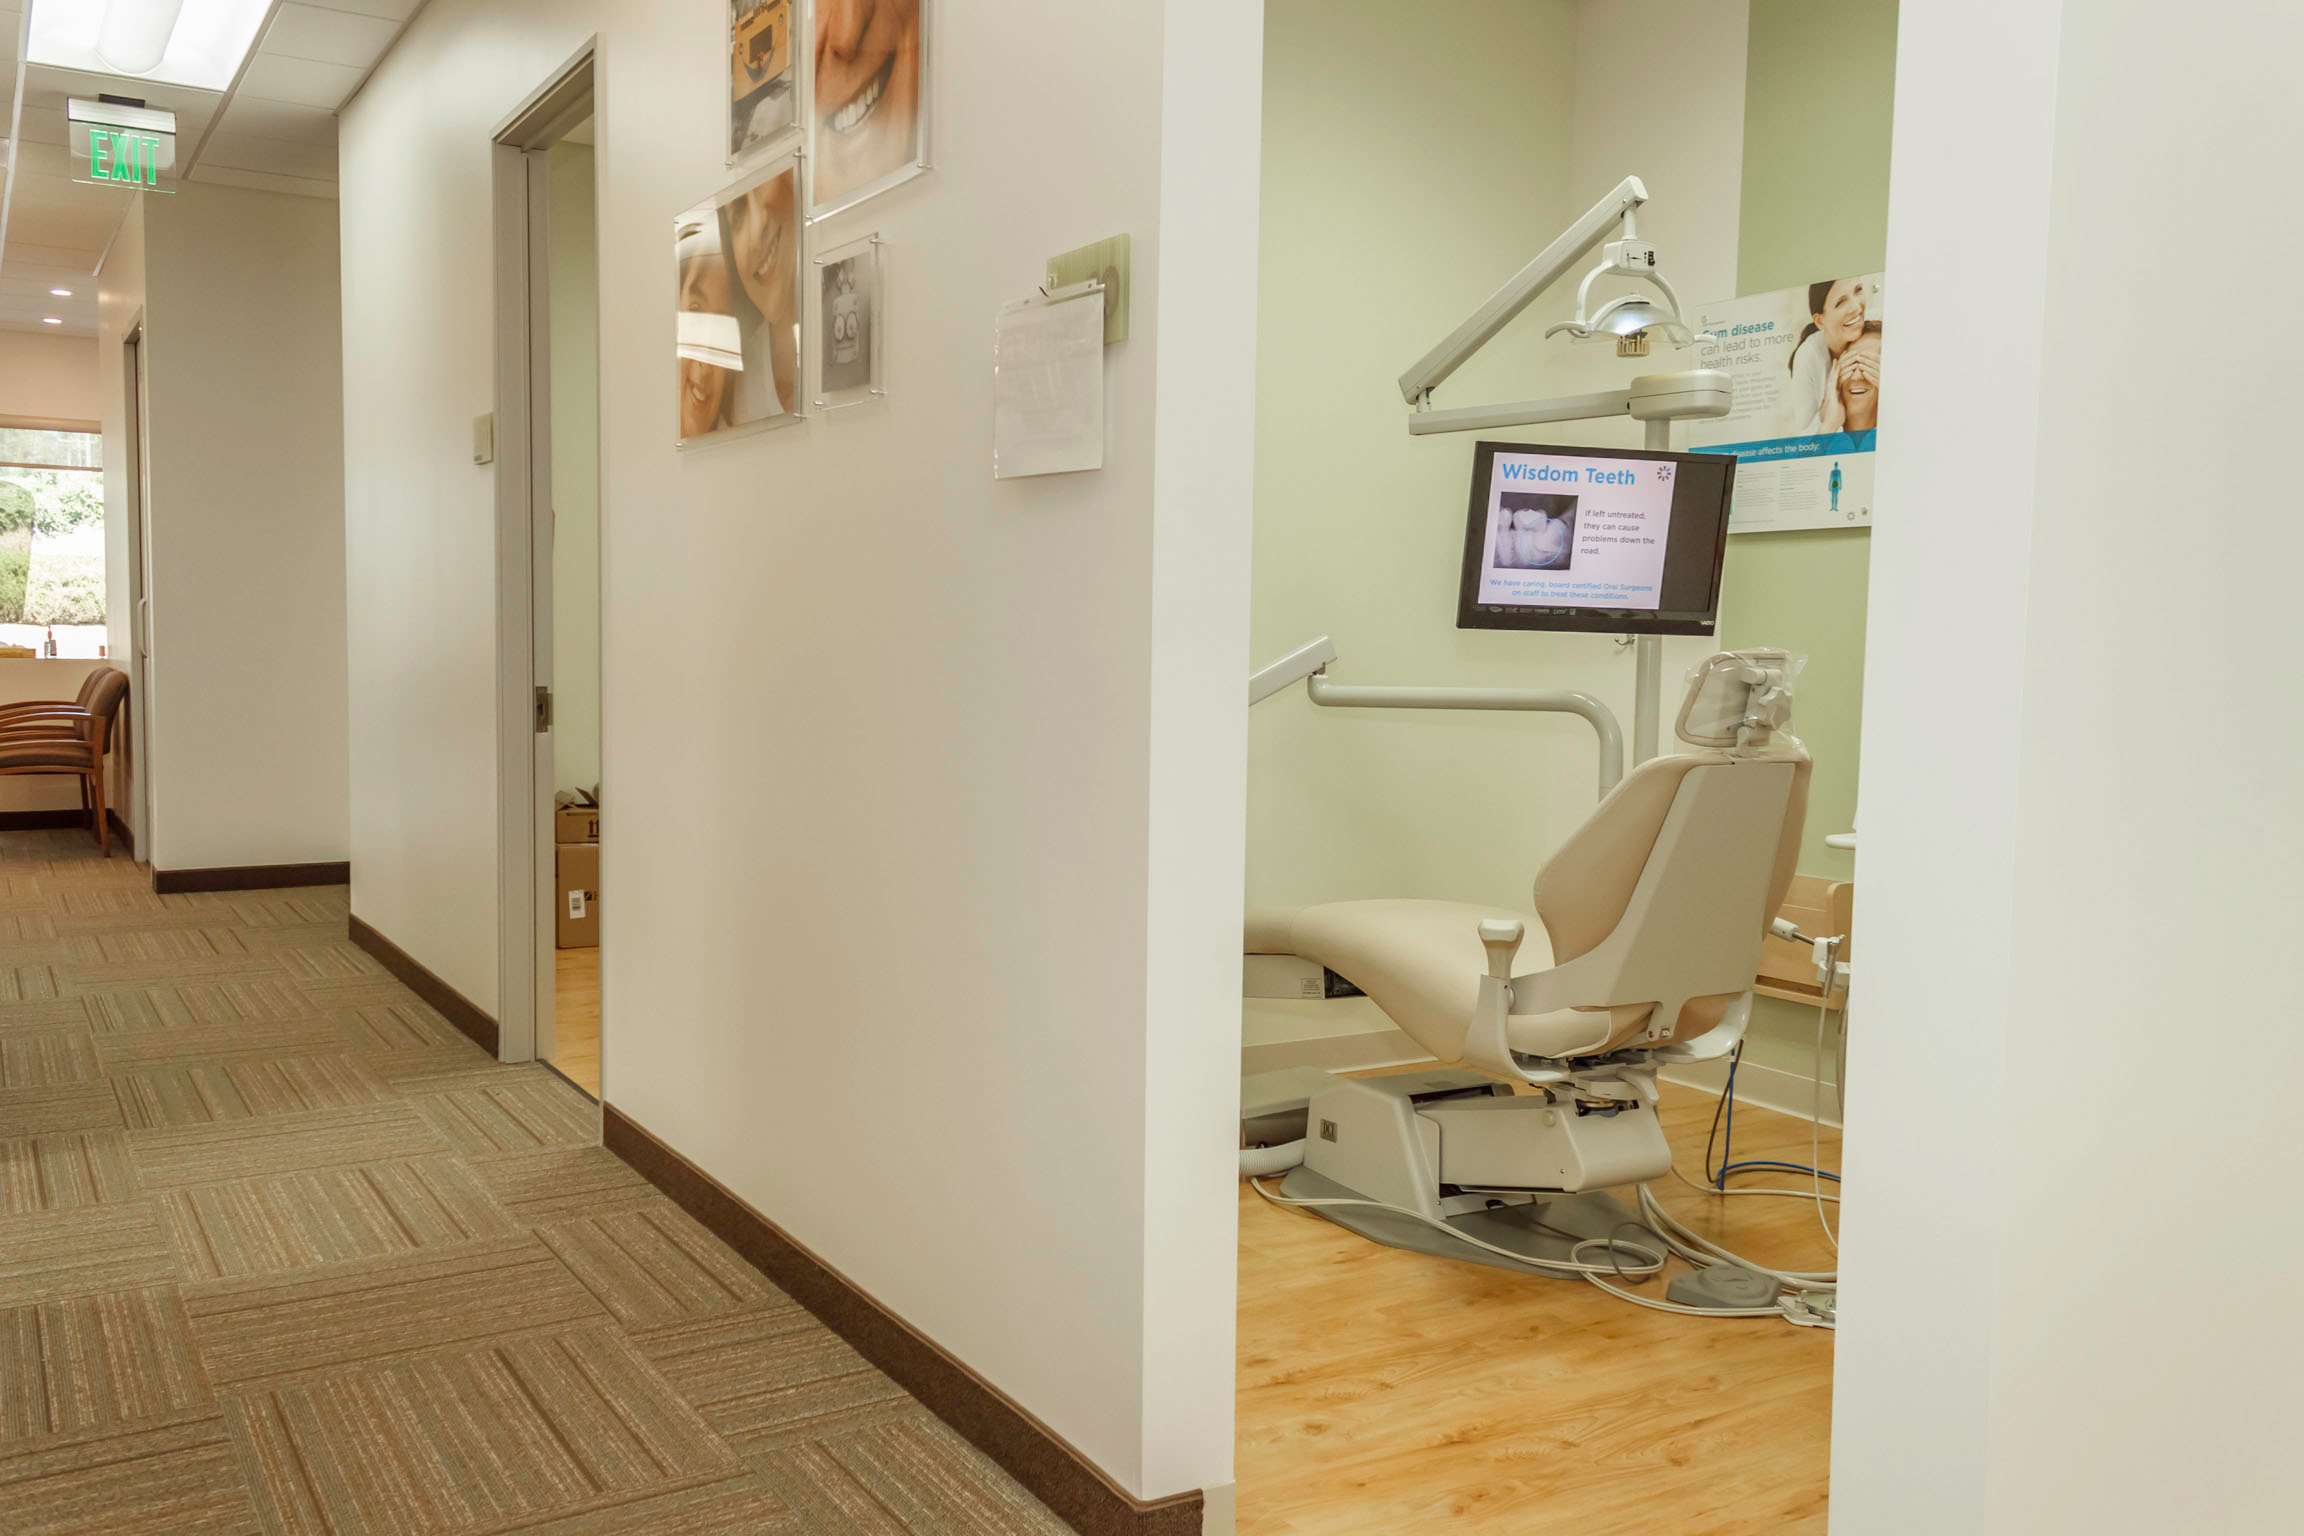 Parkville Modern Dentistry and Orthodontics - ad image